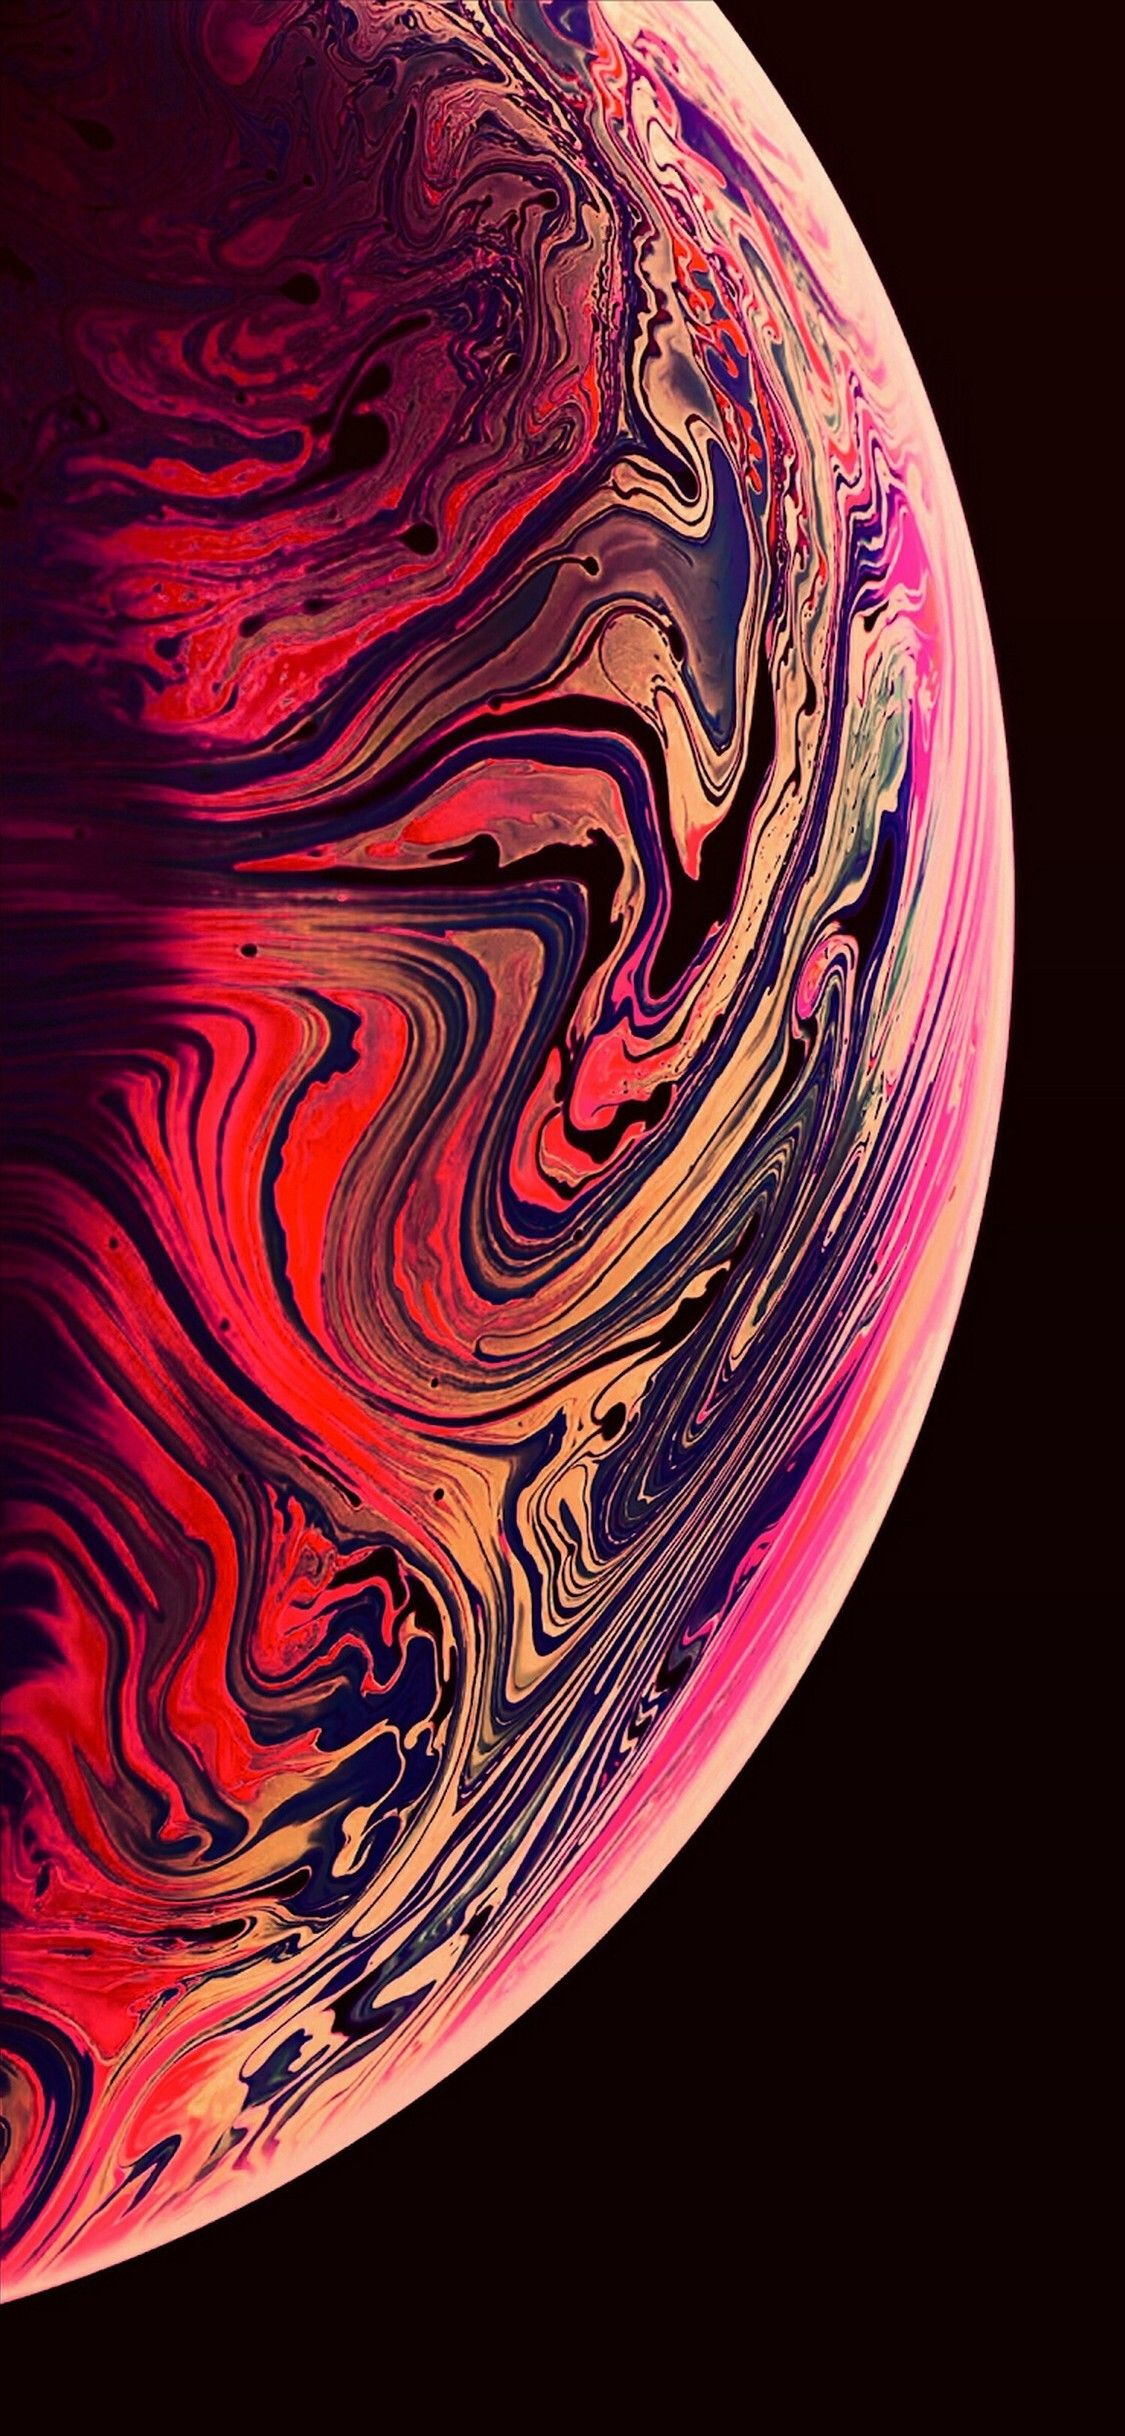 iPhone XS Screensaver Best Phone Wallpaper HD Iphone